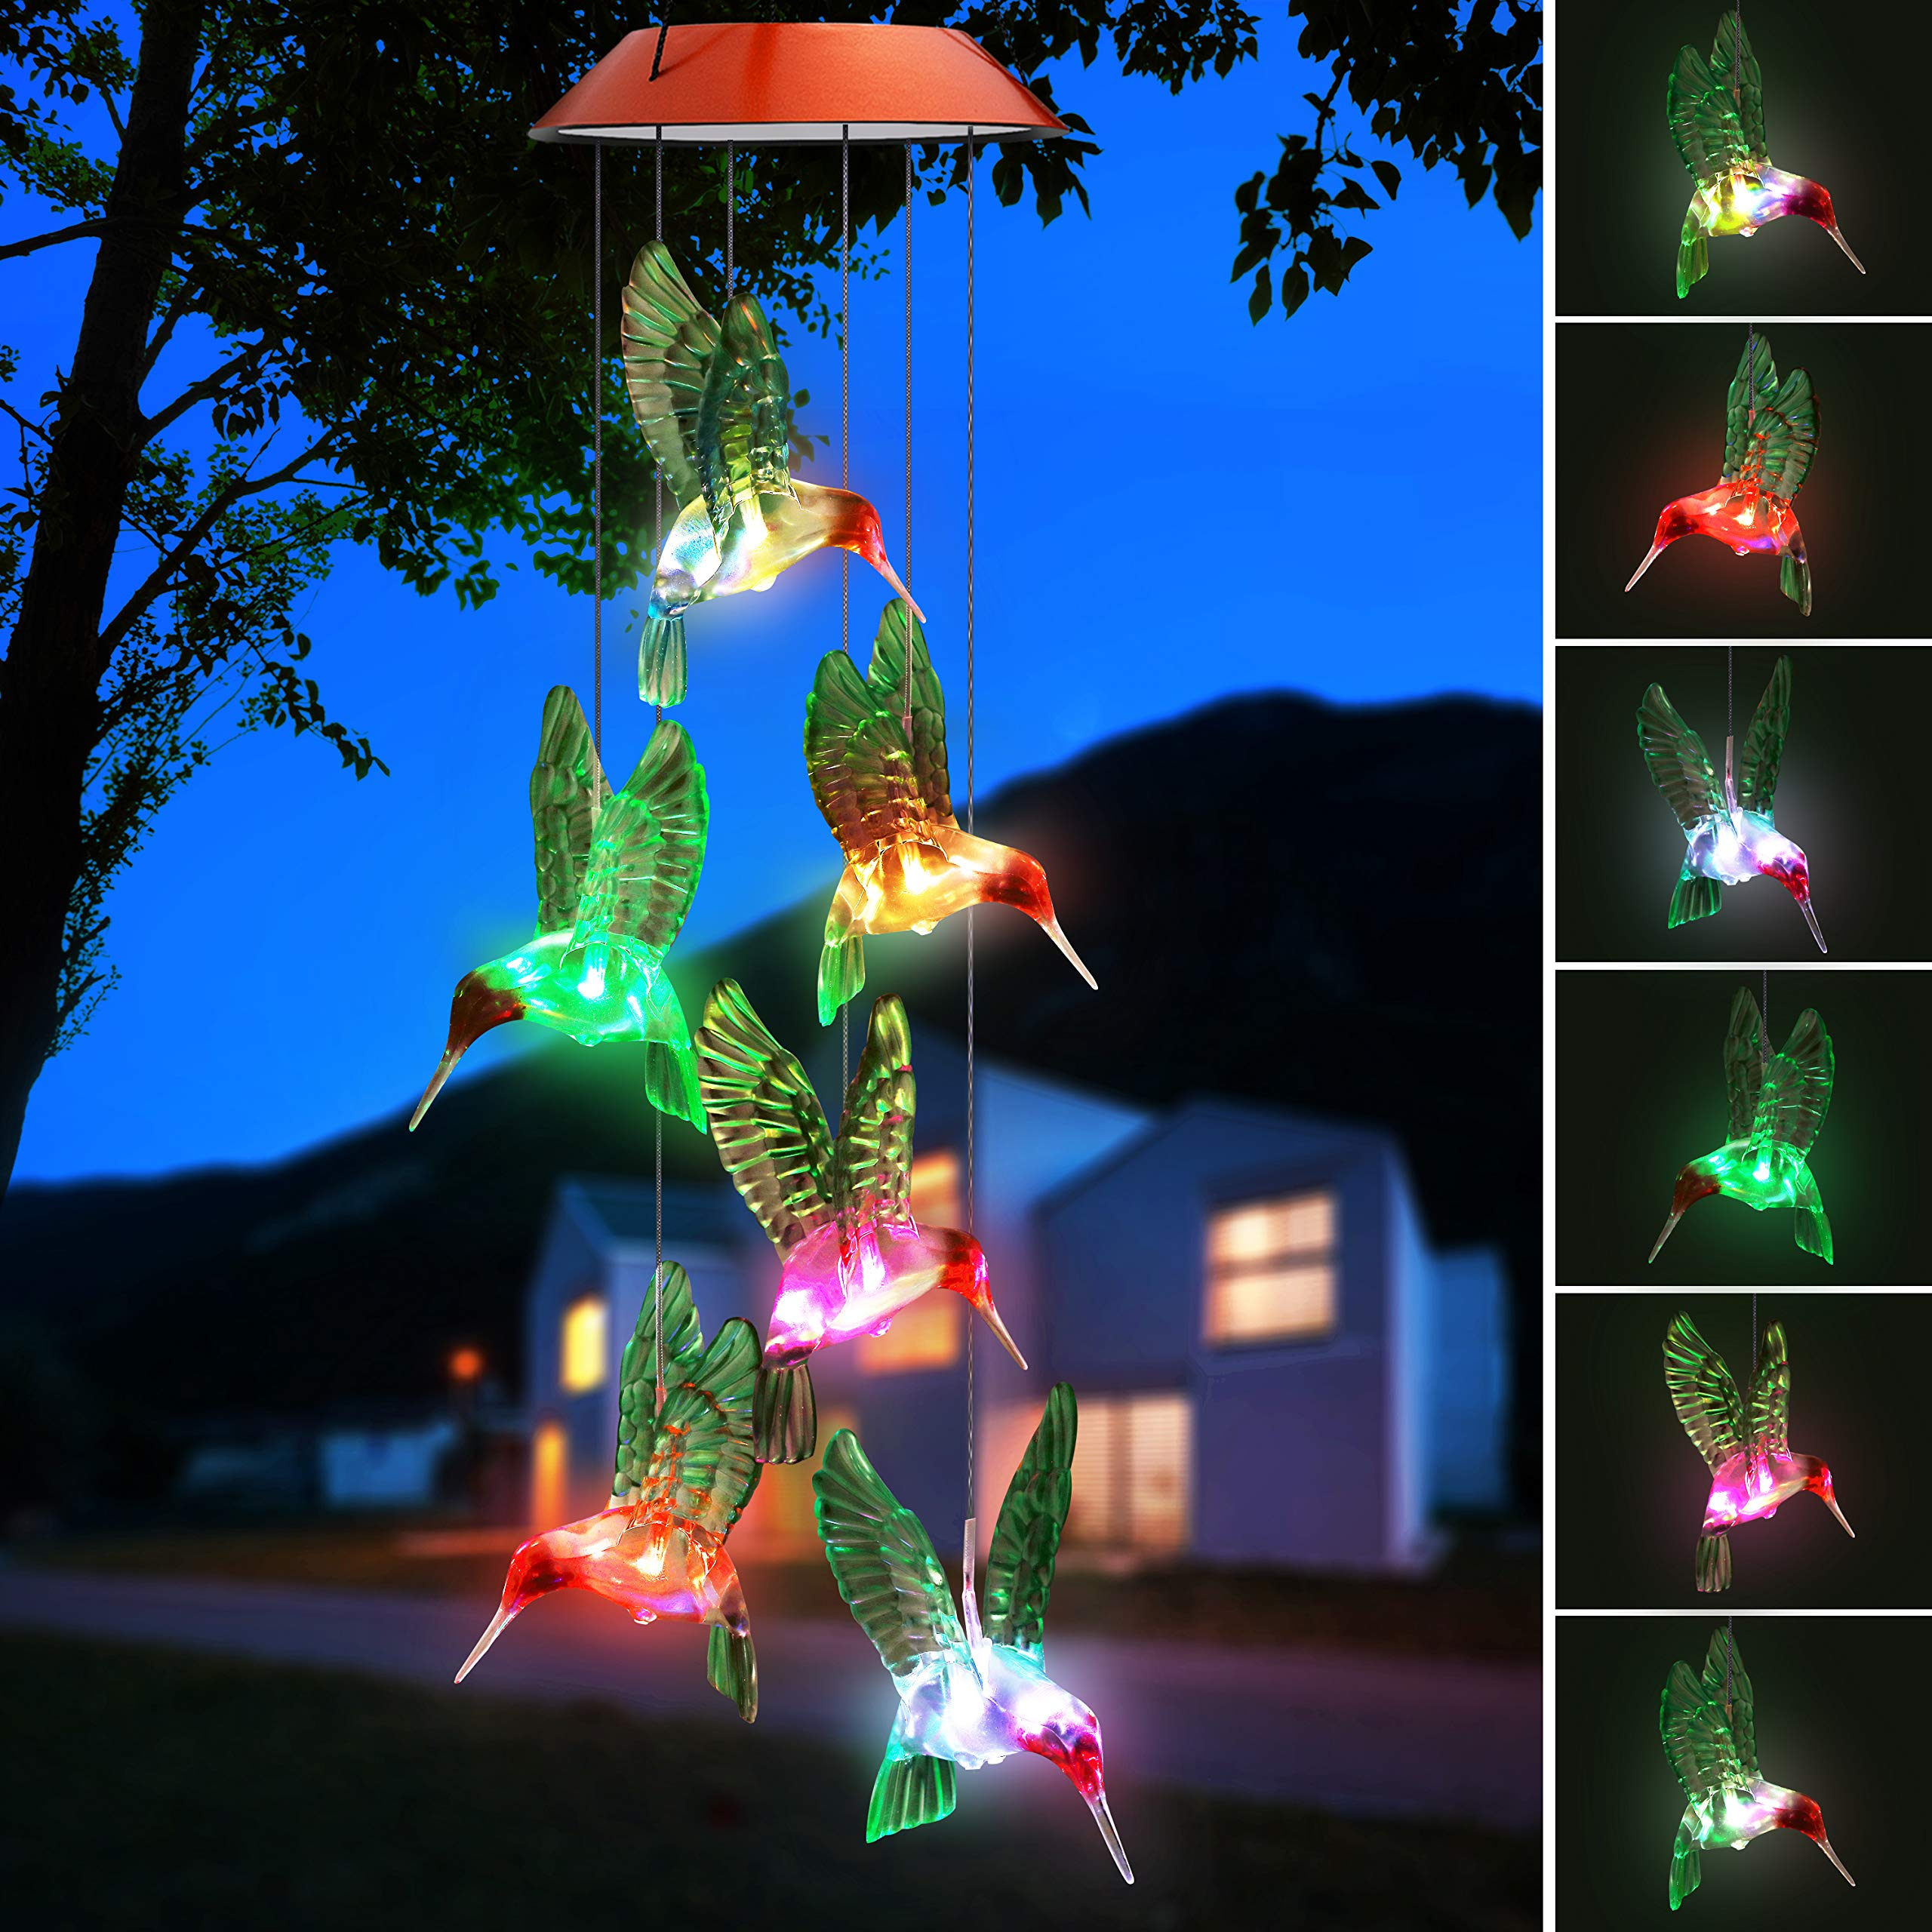 Topspeeder Color-Changing LED Solar Mobile Wind Chime LED Changing Light Color Waterproof Six Hummingbird Wind Chimes for Home Party Night Garden Decoration(Hummingbird) by Topspeeder